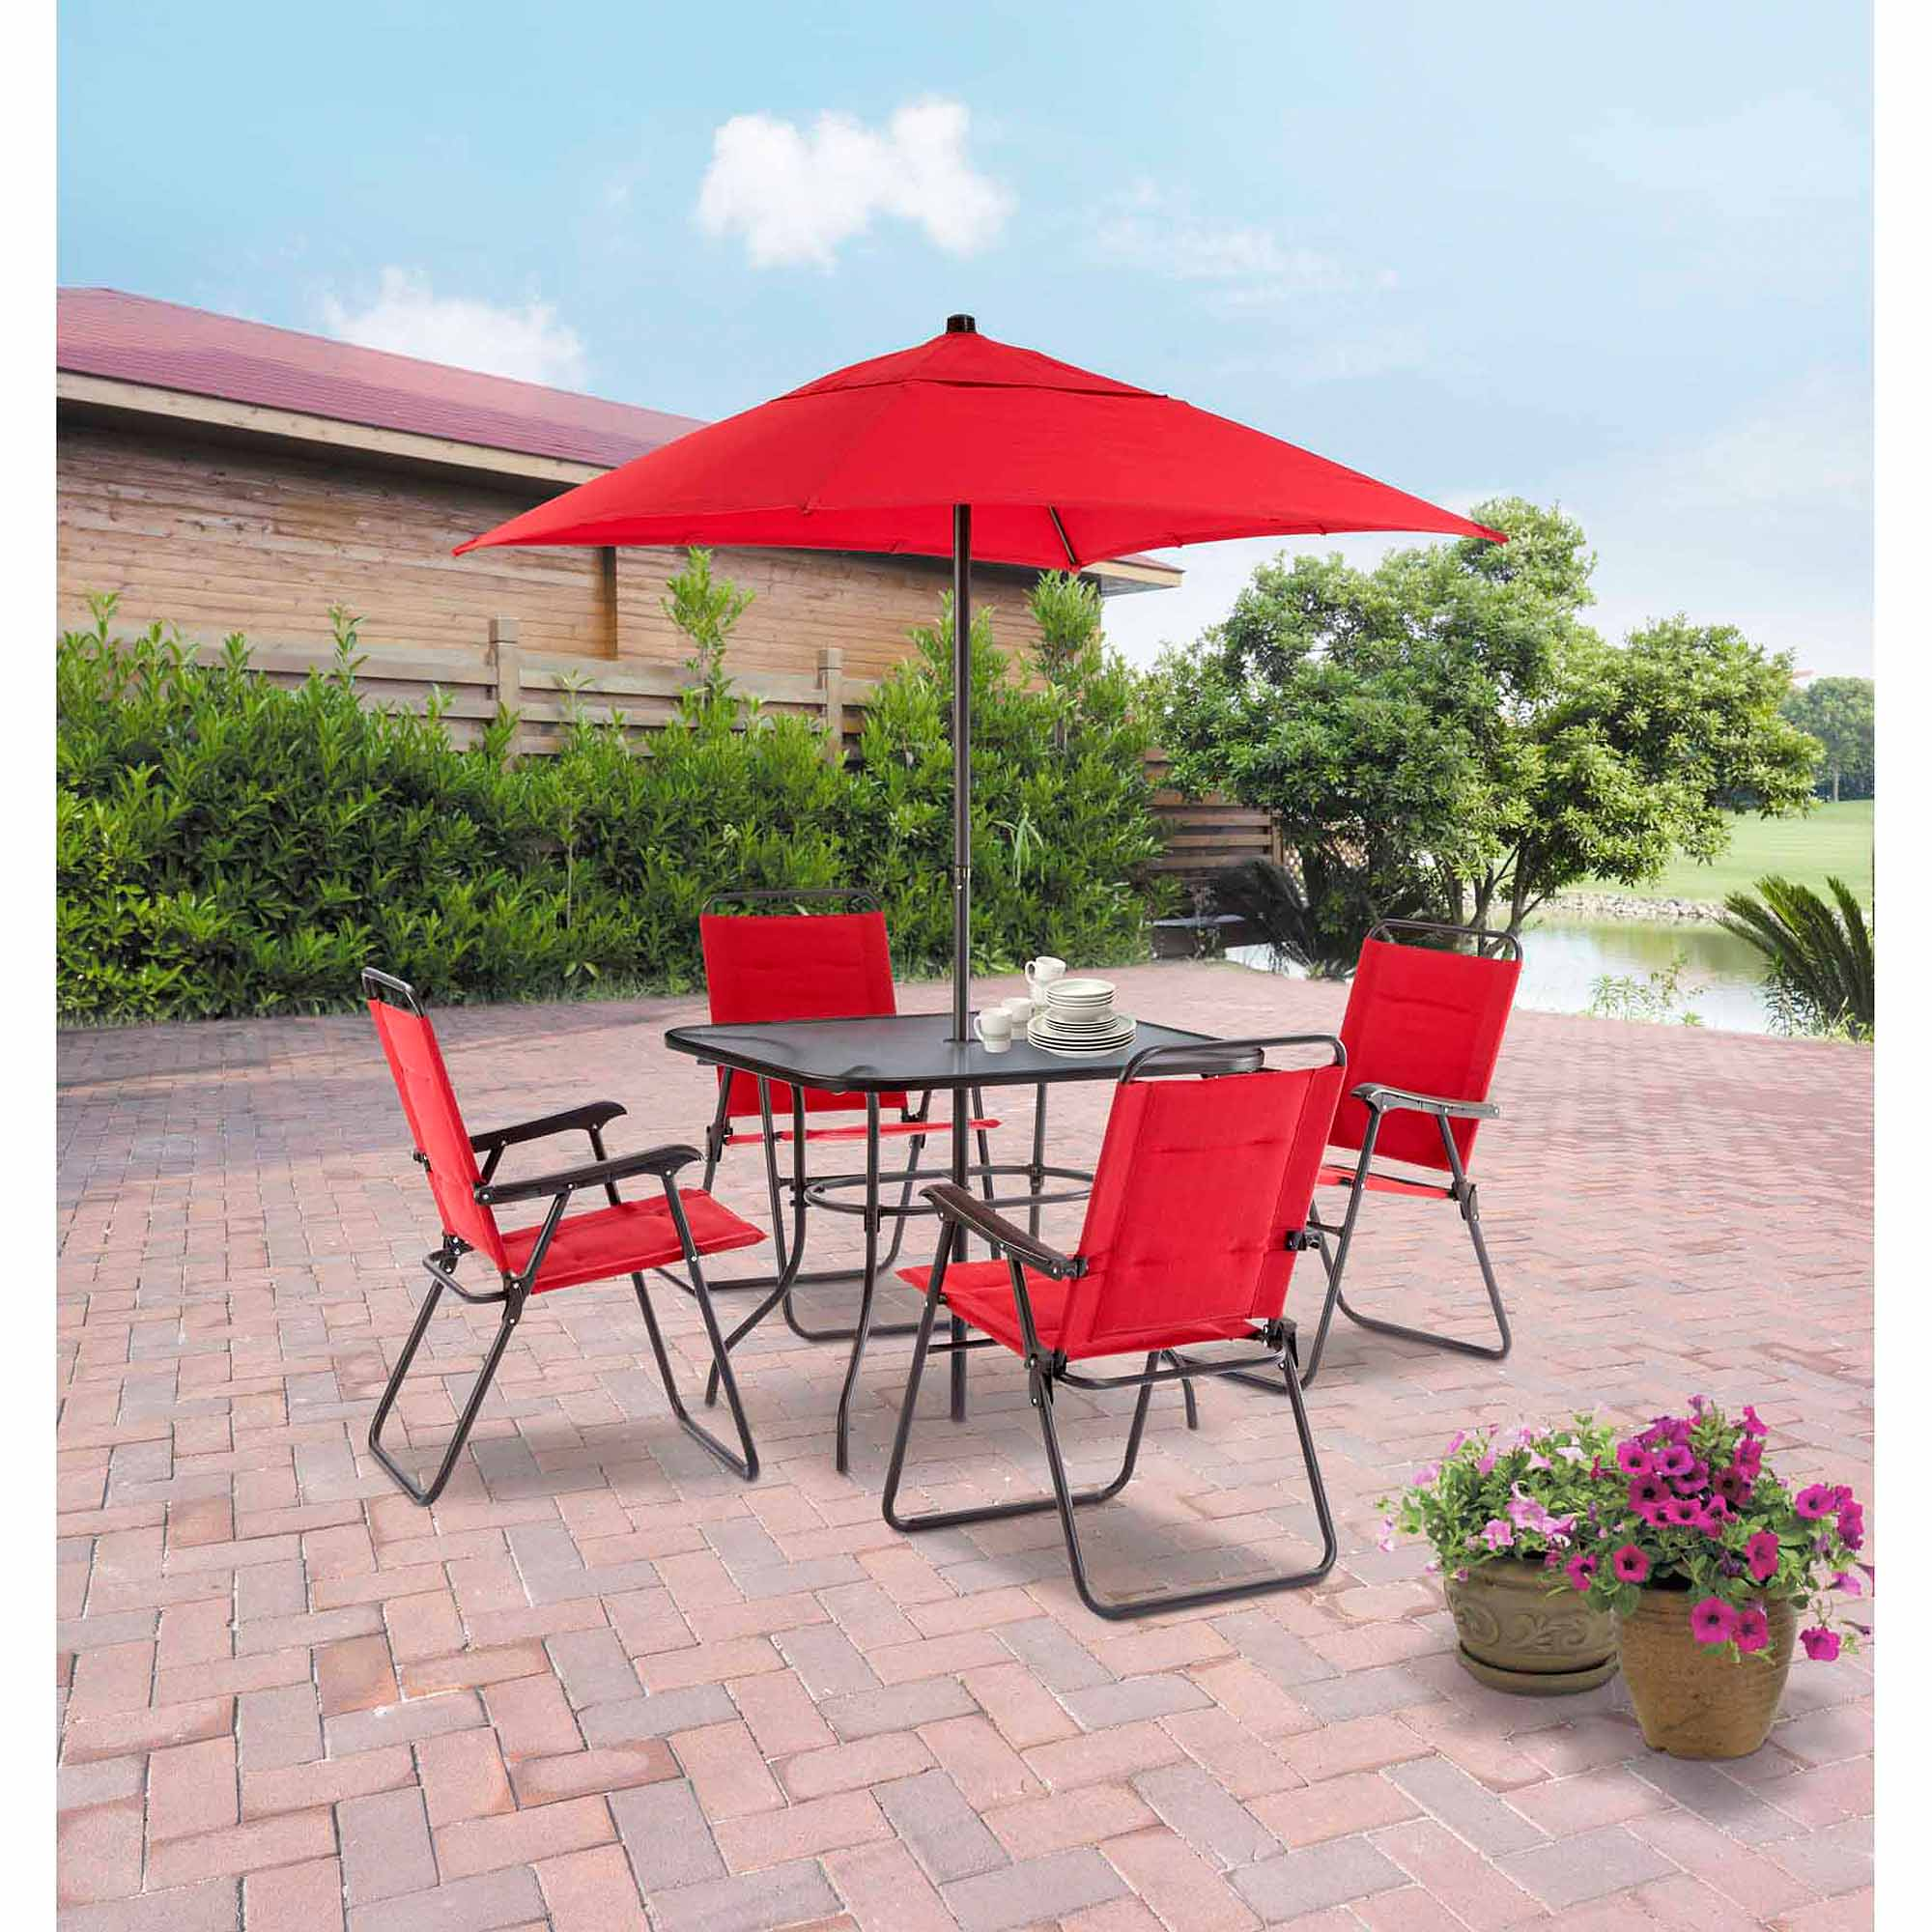 padded folding patio chairs. Mainstays Searcy Lane 6-Piece Padded Folding Patio Dining Set, Red, Seats 4 Chairs G